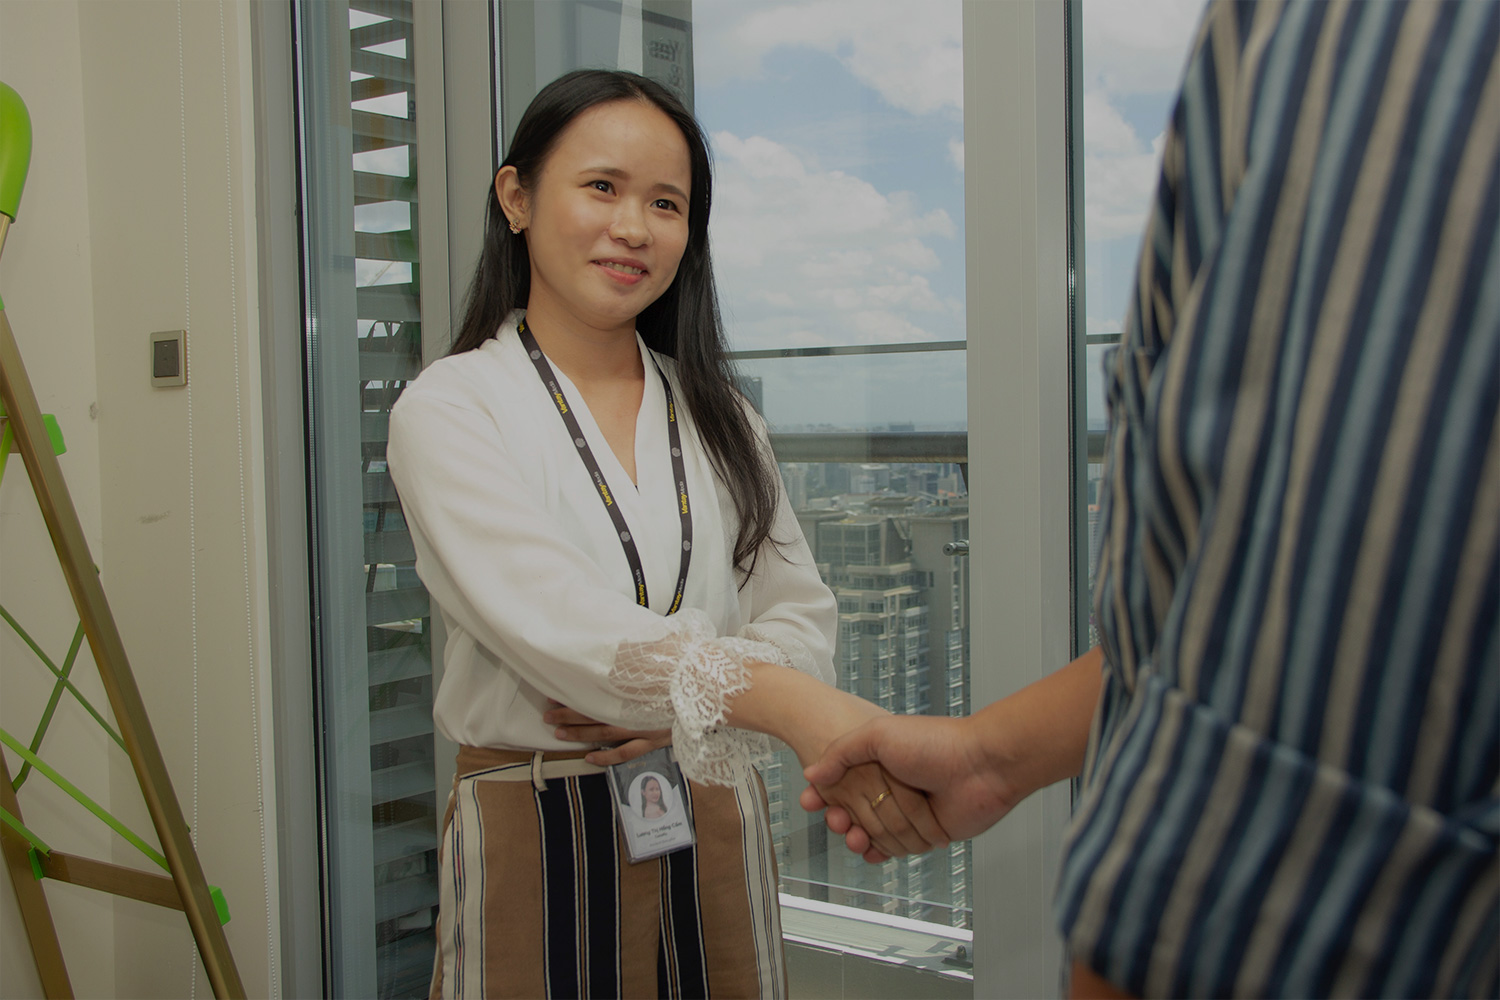 young woman shaking someone's hand planning her career